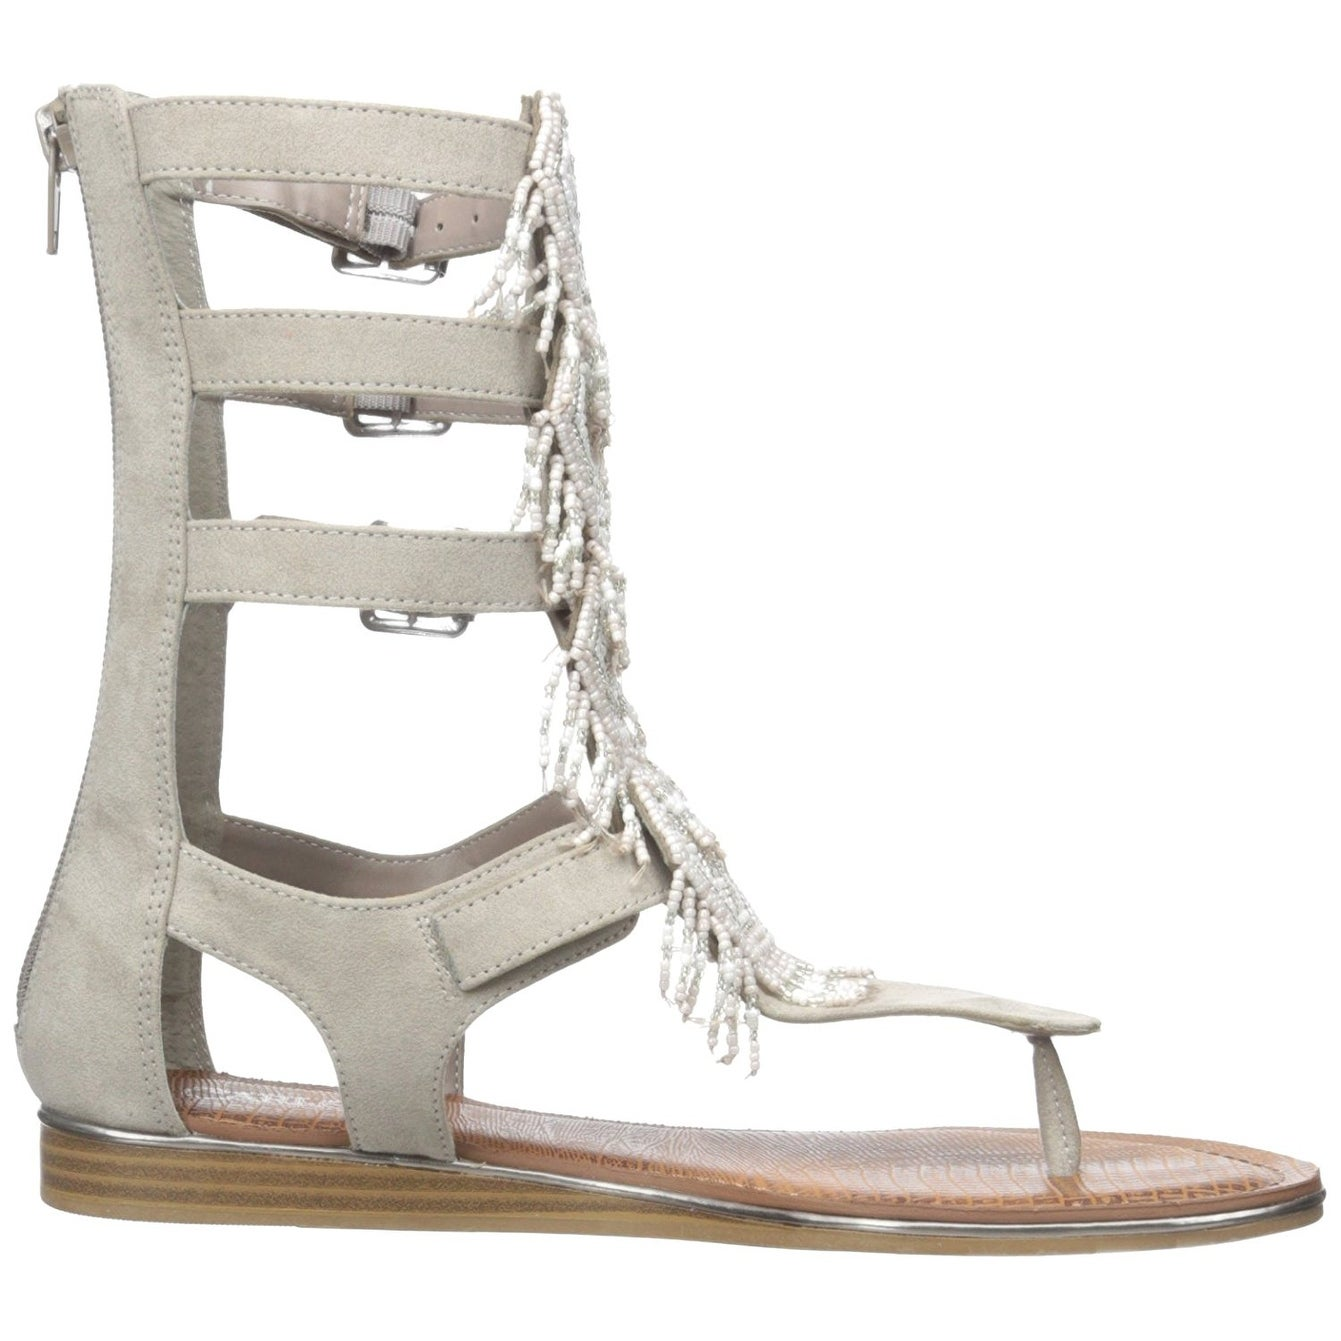 a2dc625b1f52 Shop Carlos by Carlos Santana Womens taos Open Toe Casual Gladiator Sandals  - Free Shipping Today - Overstock - 15810729